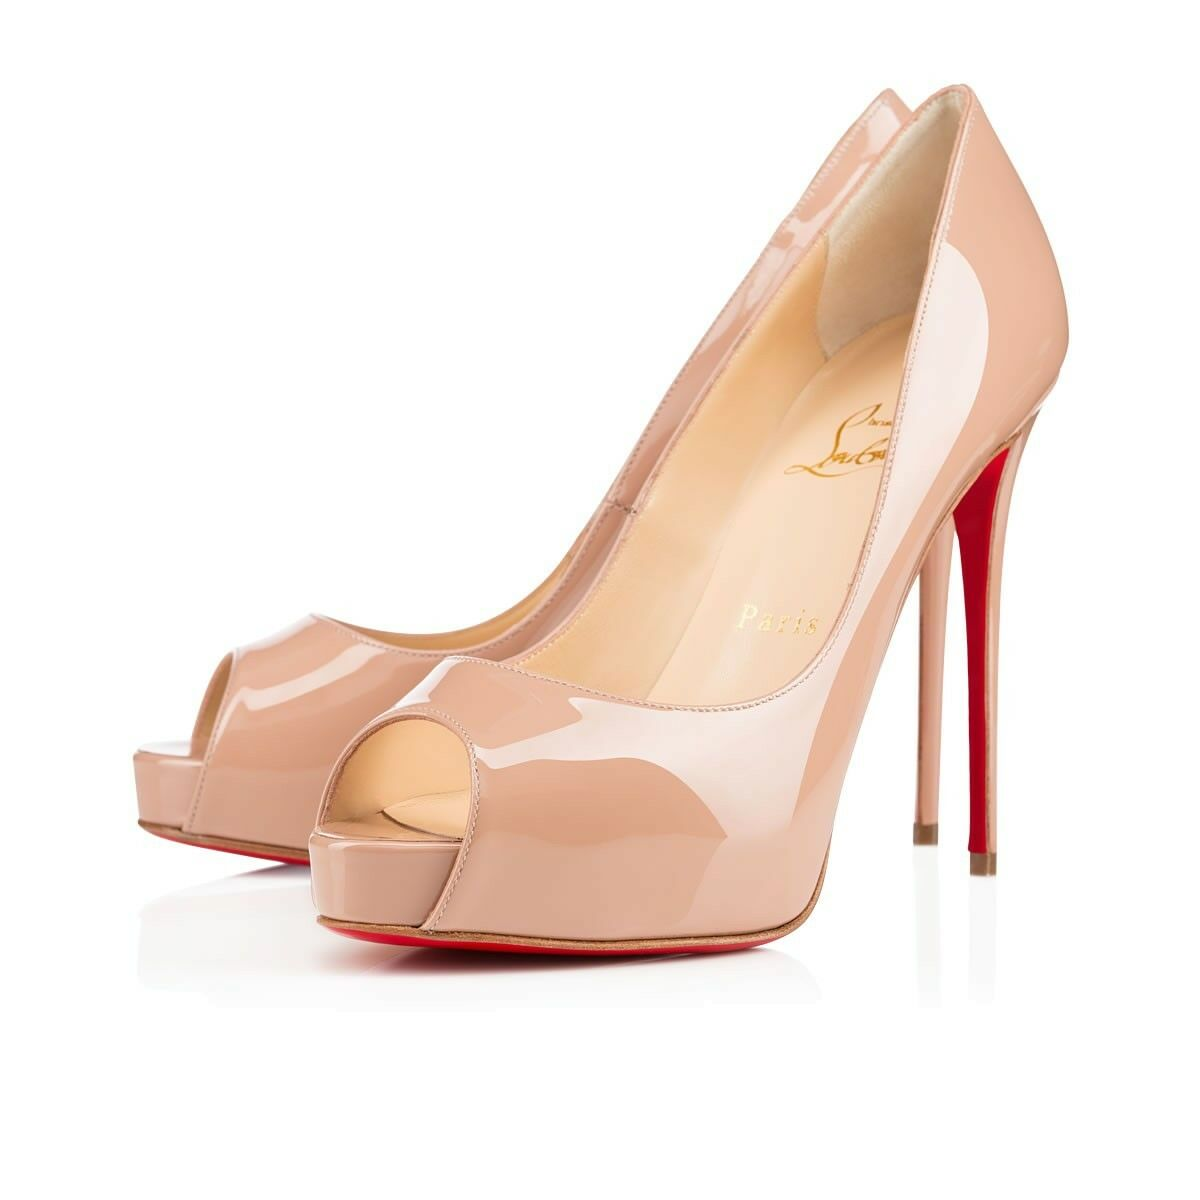 Christian Louboutin New Very Prive 150 Patent Leather Peep Toe Pumps Sz 41/11 US